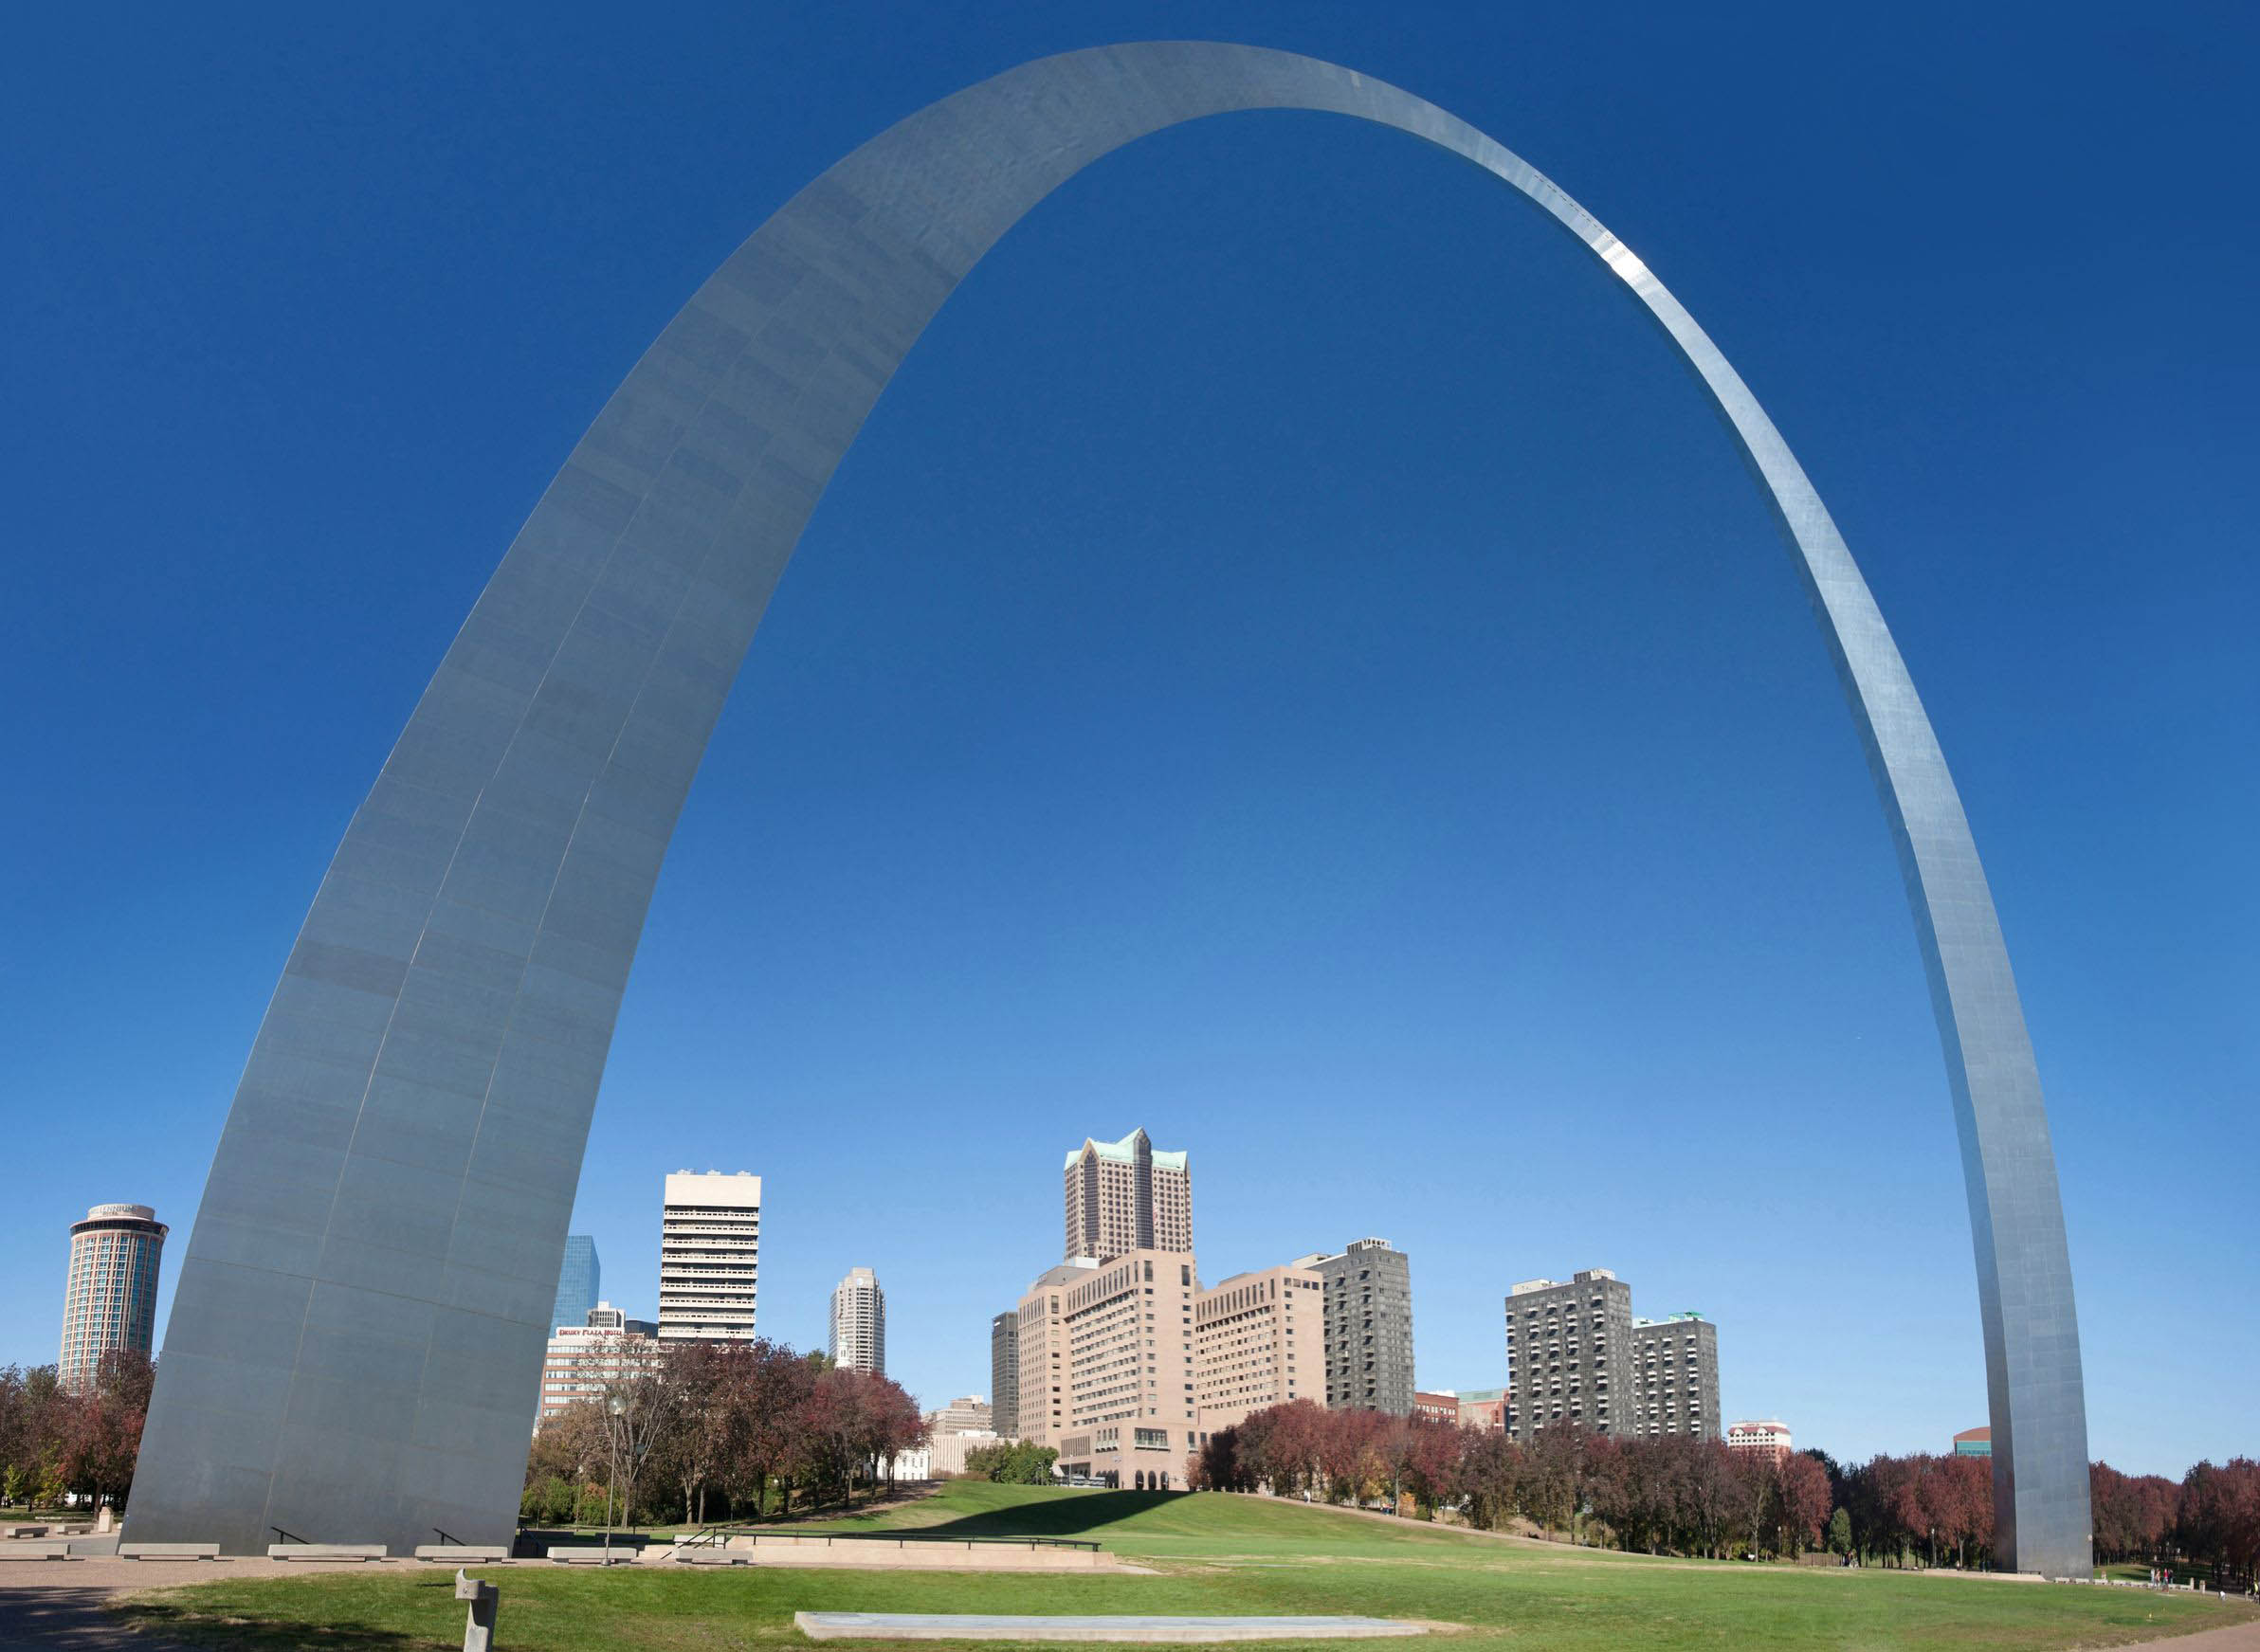 arch-monument-missouri-usa